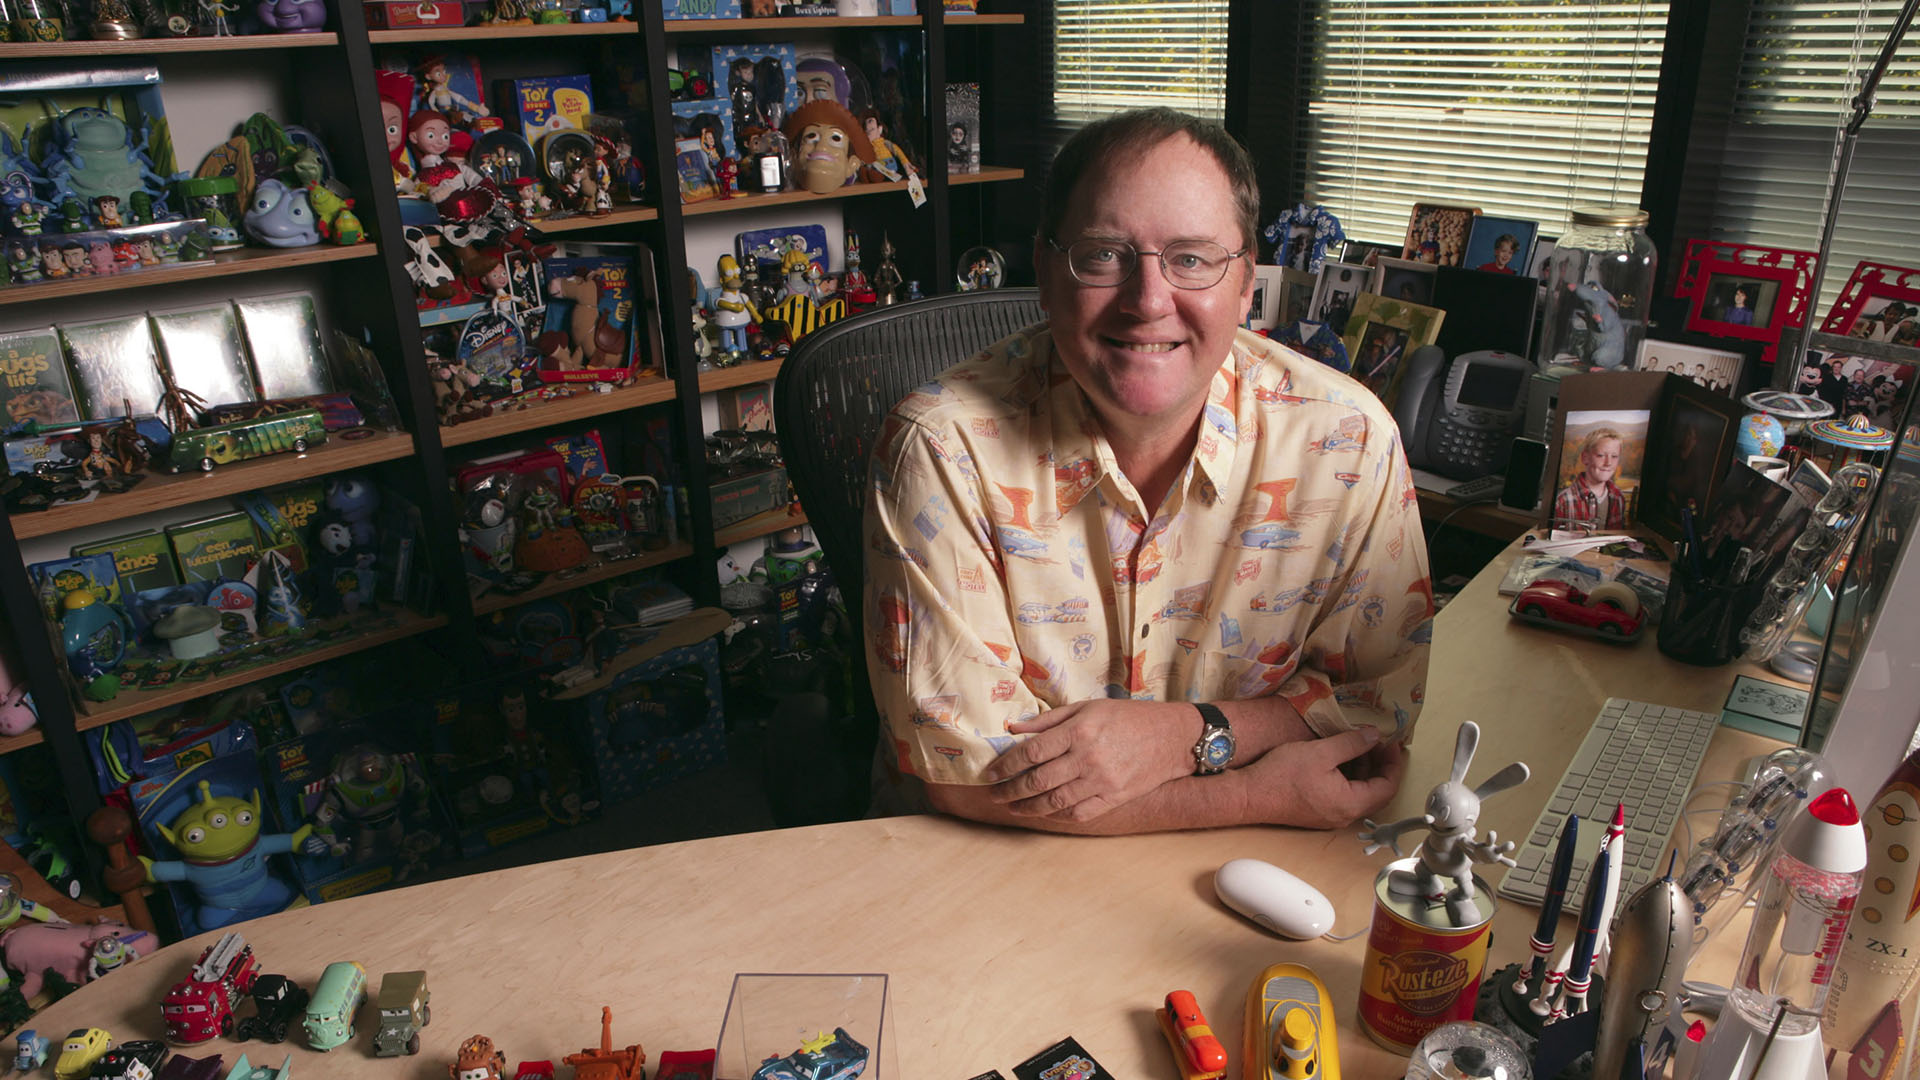 John Lasseter: A Day in the Life